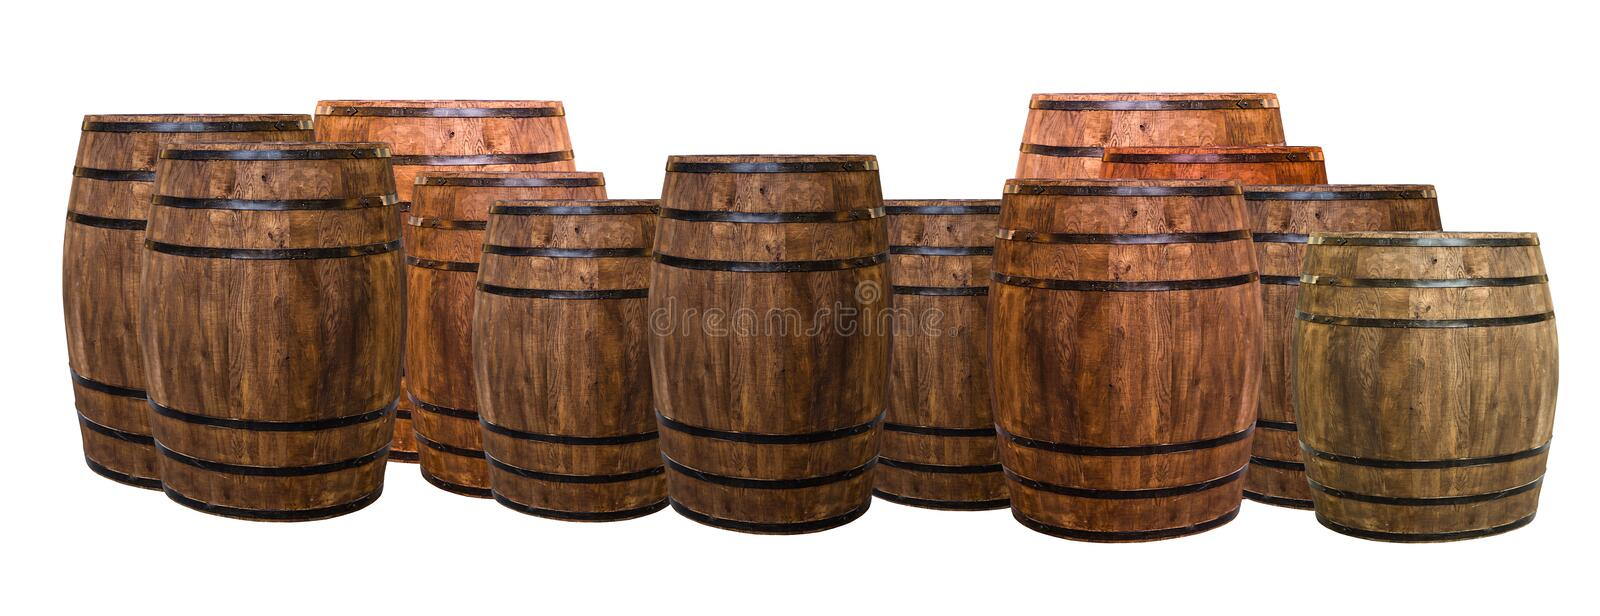 Many oak barrels cask group isolated on a white background, exposure and bring the taste of wine stock photo